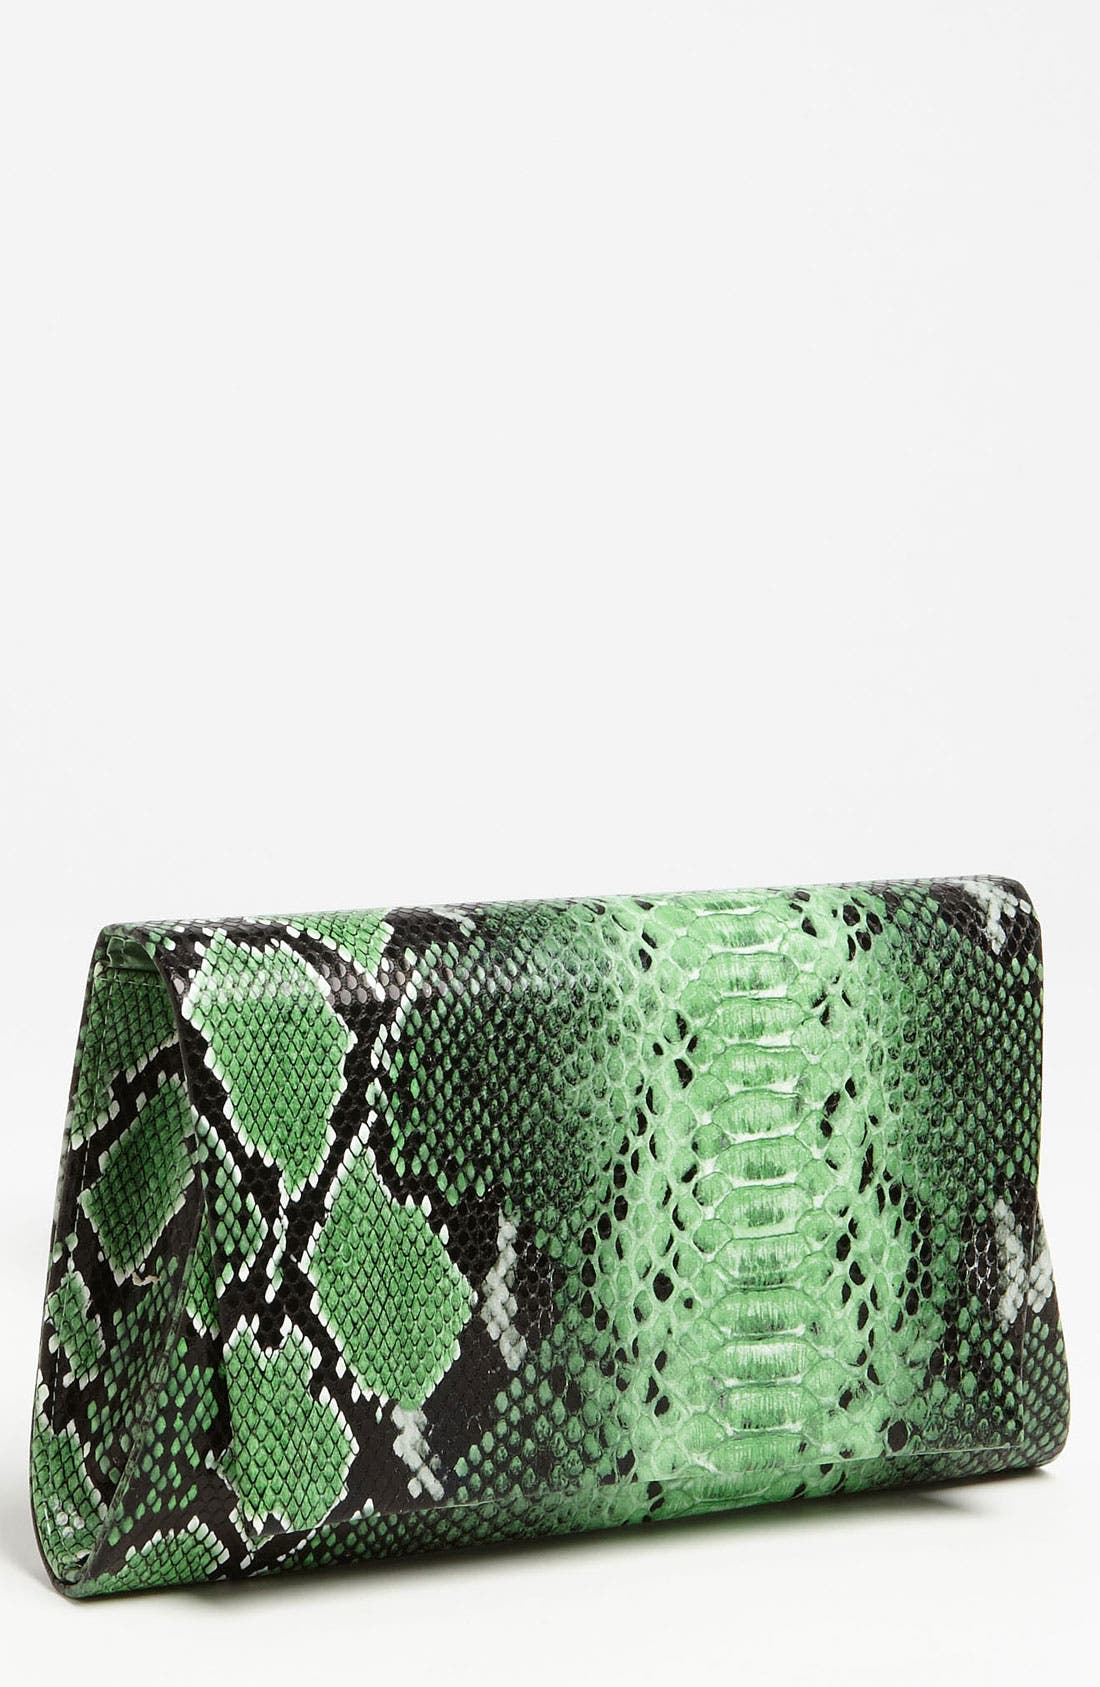 Alternate Image 1 Selected - Natasha Couture Foldover Snake Embossed Clutch